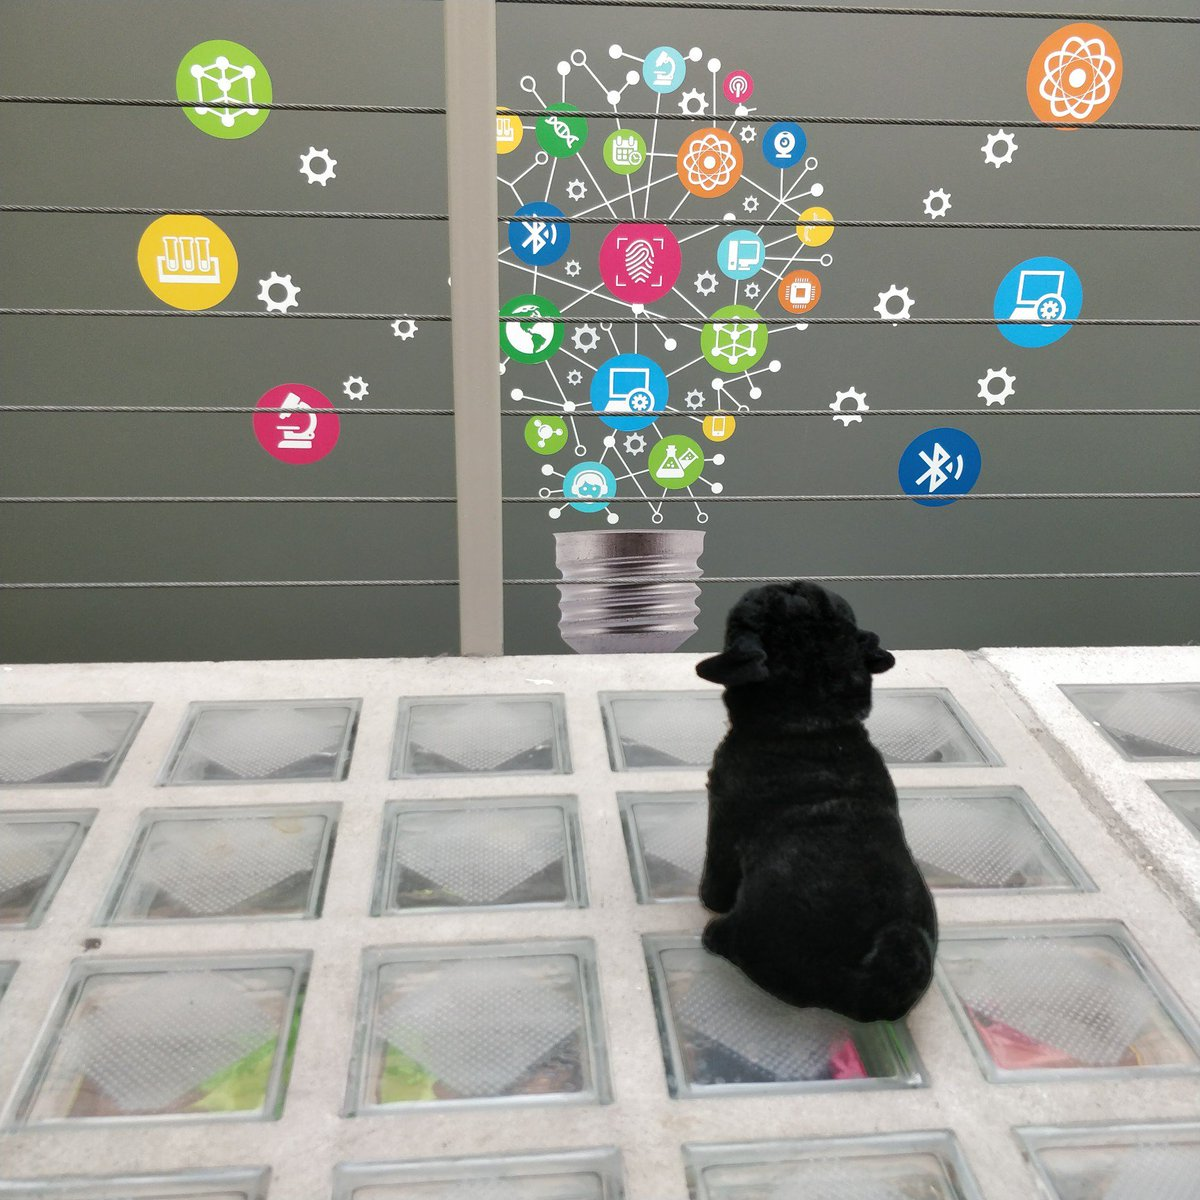 While everybody is ready to enjoy their weekend... Black Puggers are wondering and thinking about great projects and ideas ongoing at @BlackPugStudio - #wondering #ideas #creative #Web #tech #weekend #pug #design #designthinking #ux #uxdesign<br>http://pic.twitter.com/O2t5YyW93T